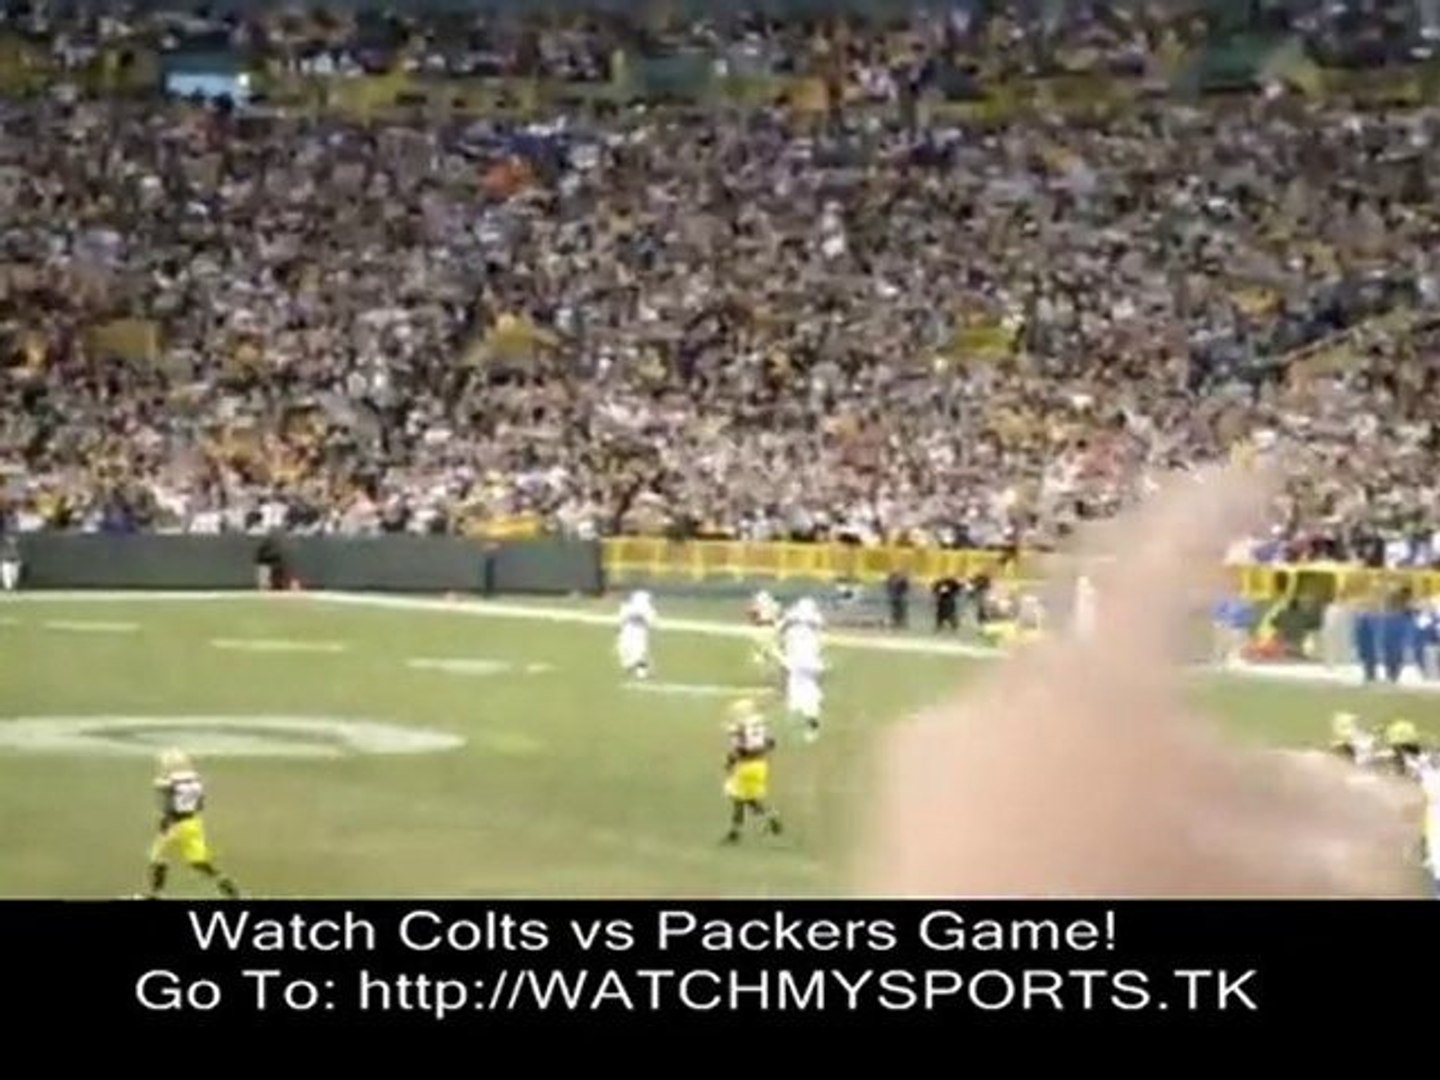 Watch Colts vs Packers Online Live - Stream 2010 NFL Games